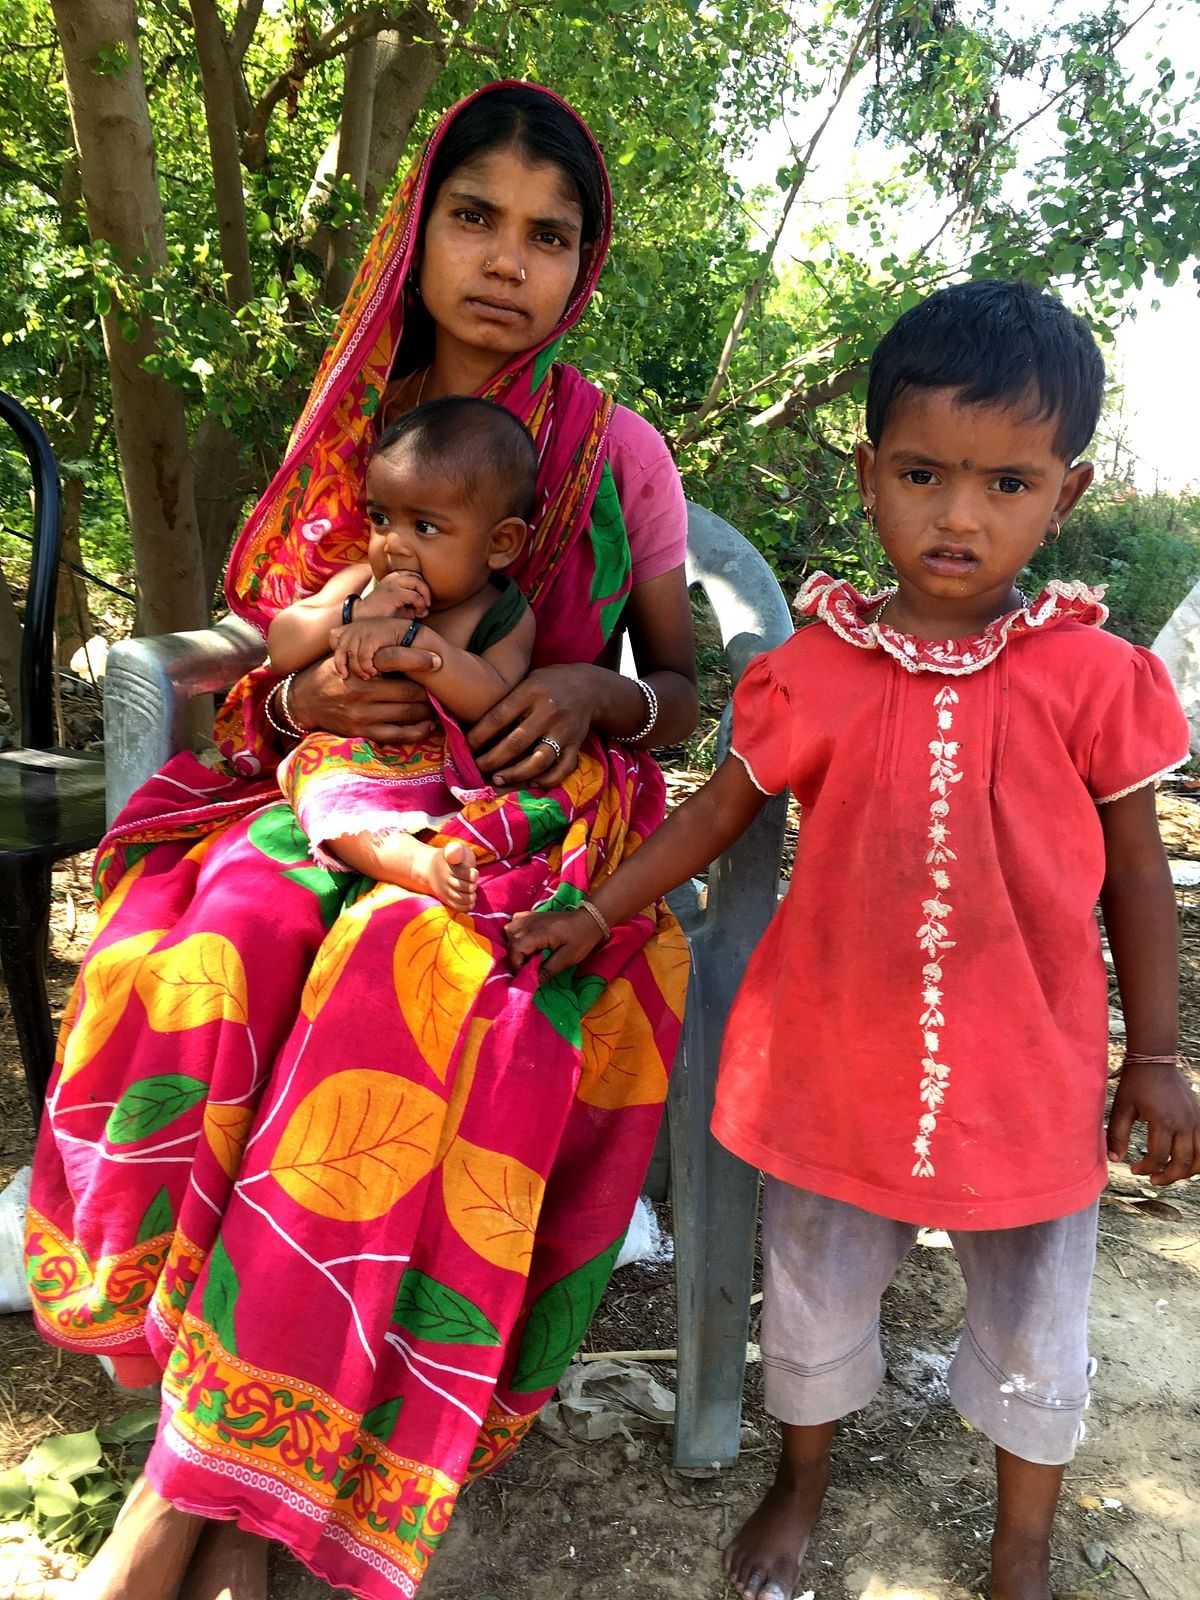 Rashida who lives in Kabadi Basti near Kapasheda farm houses had delivered a baby 3 months back and found it hard to aceess food at a school 2 km away.